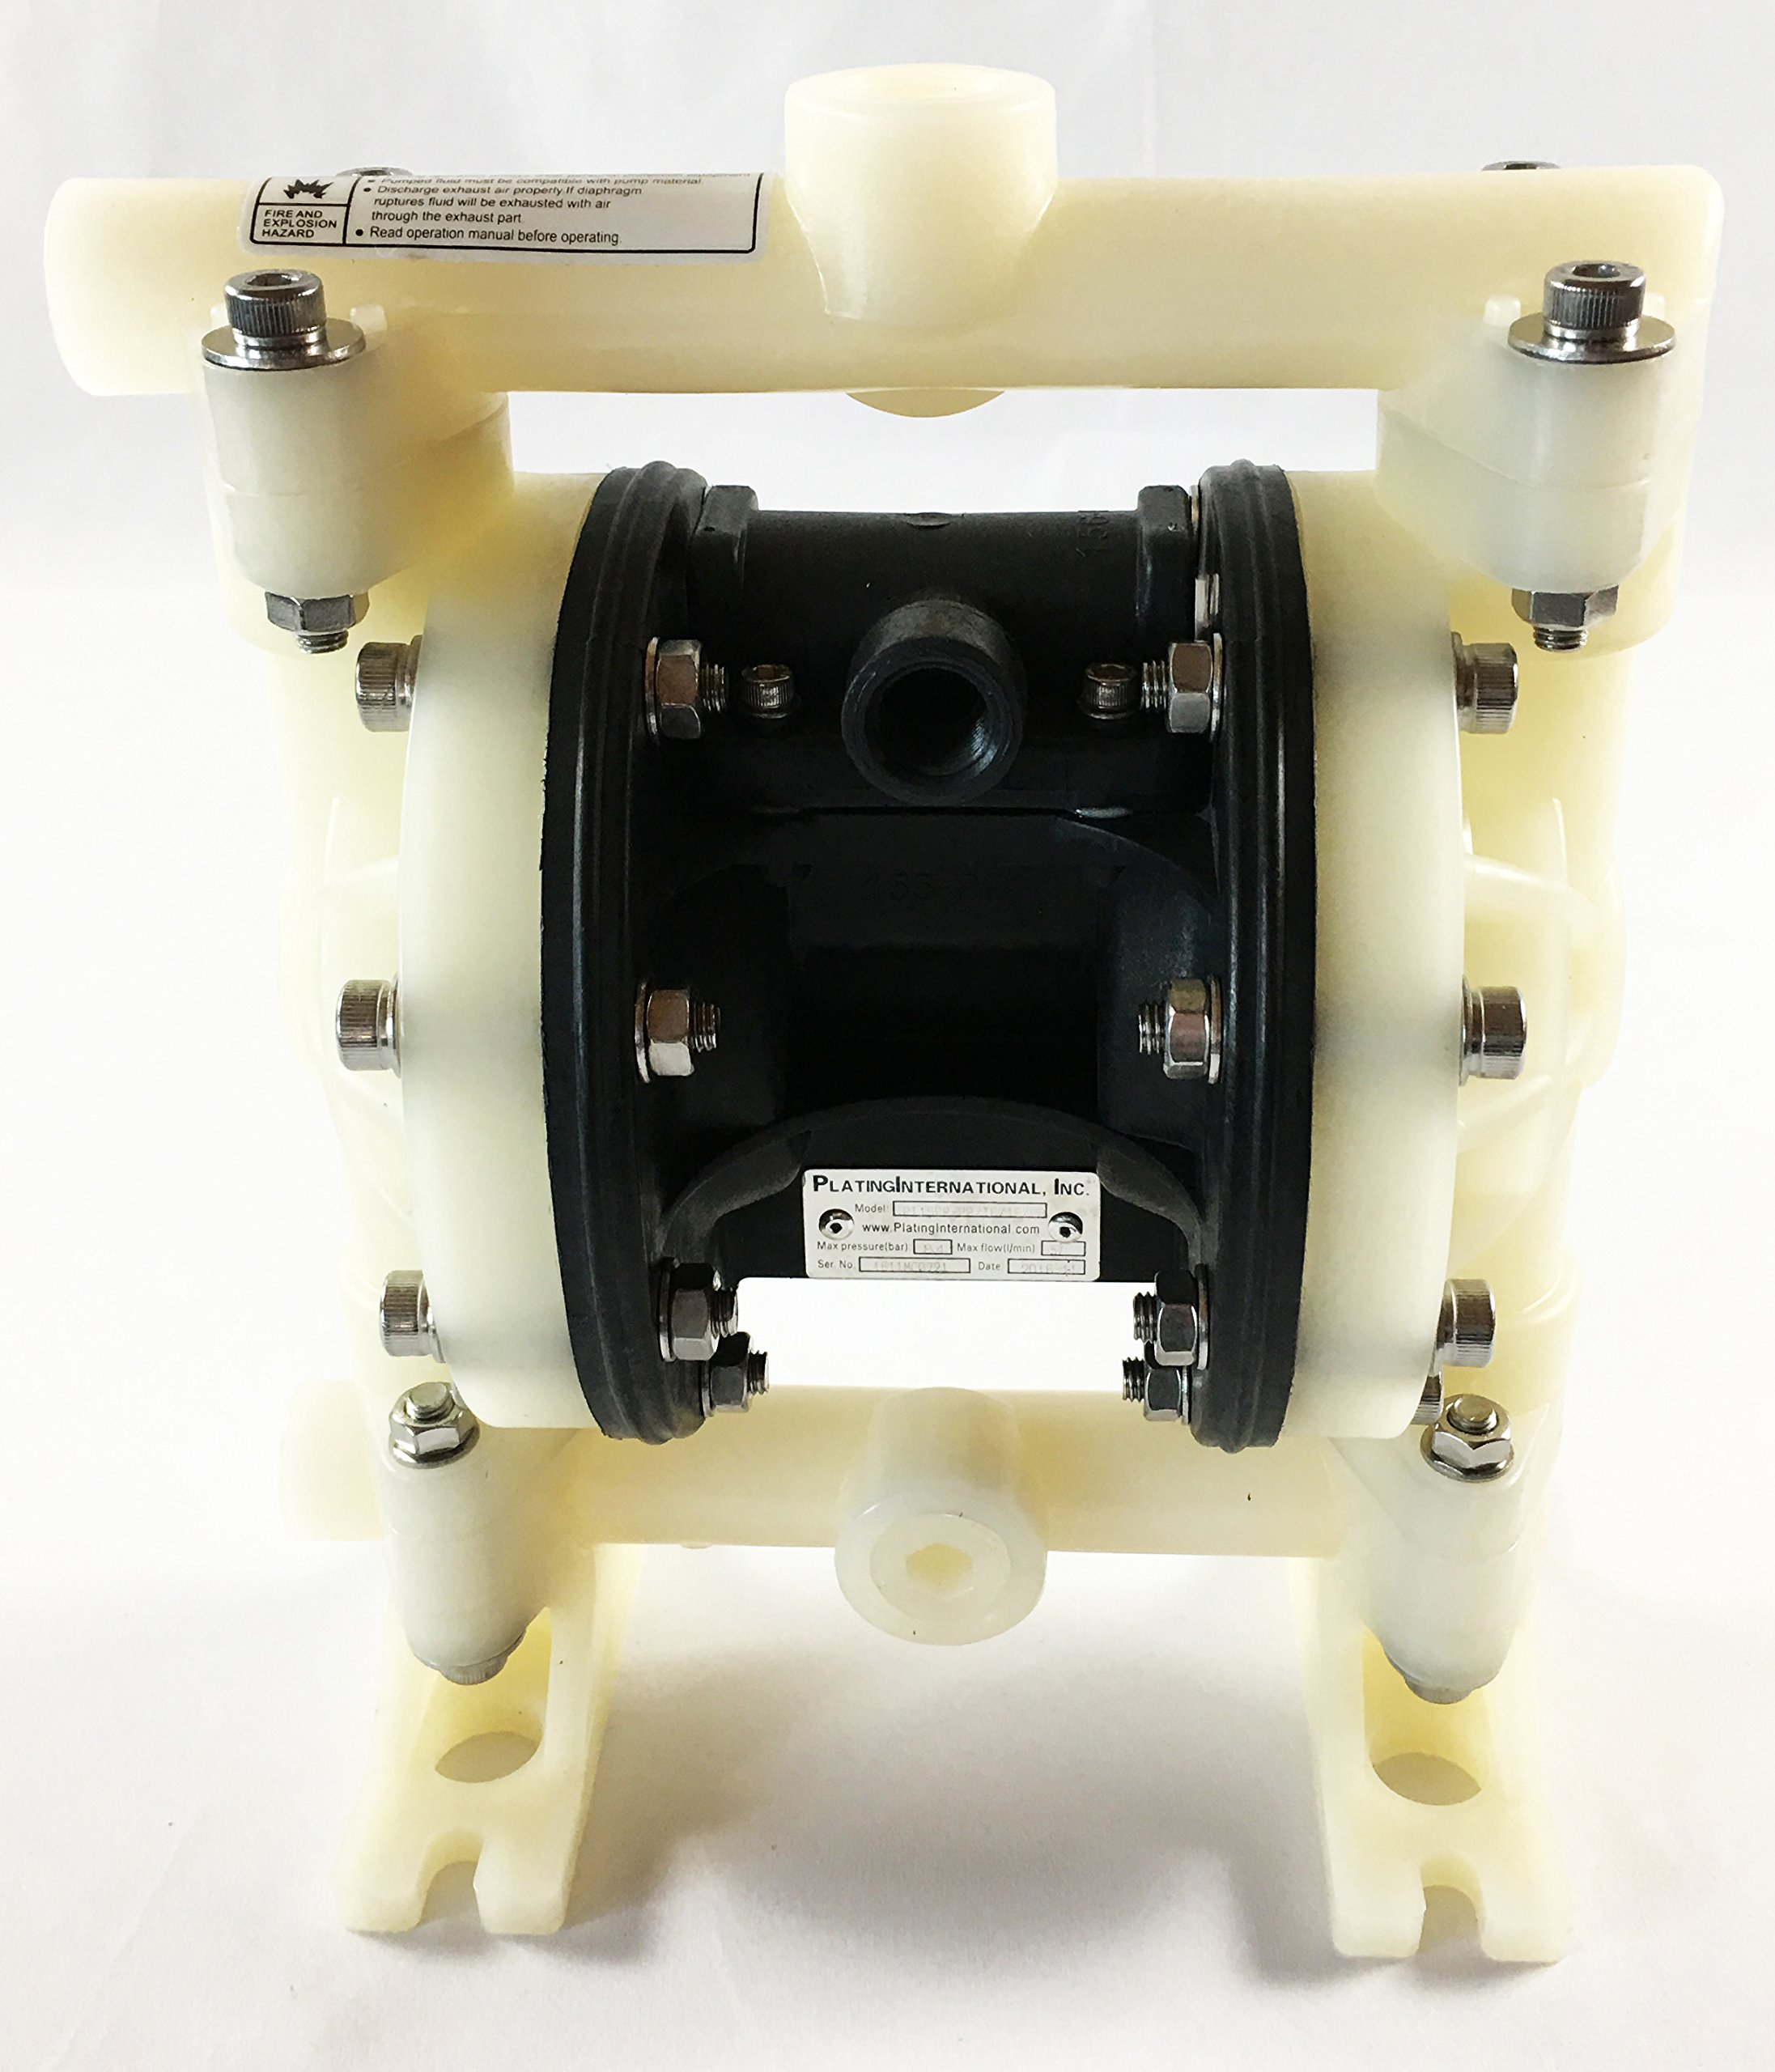 Double Diaphragm Air Pump PII.50 Chemical Industrial Polypropylene 1/2'' or 3/4'' NPT Inlet / Outlet by Plating International (Image #4)